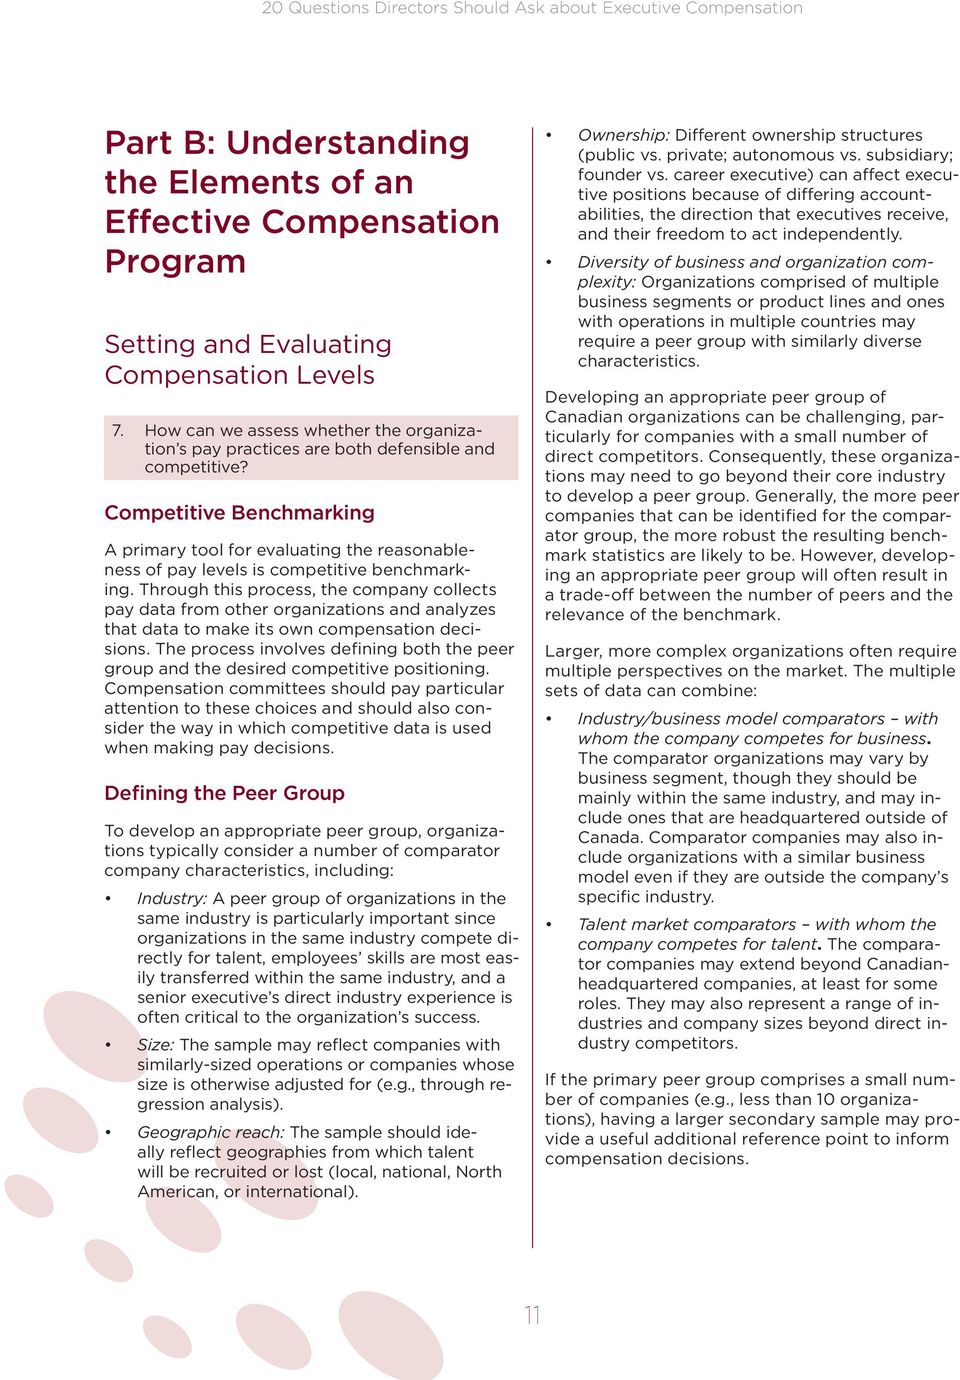 Competitive Benchmarking A primary tool for evaluating the reasonableness of pay levels is competitive benchmarking.